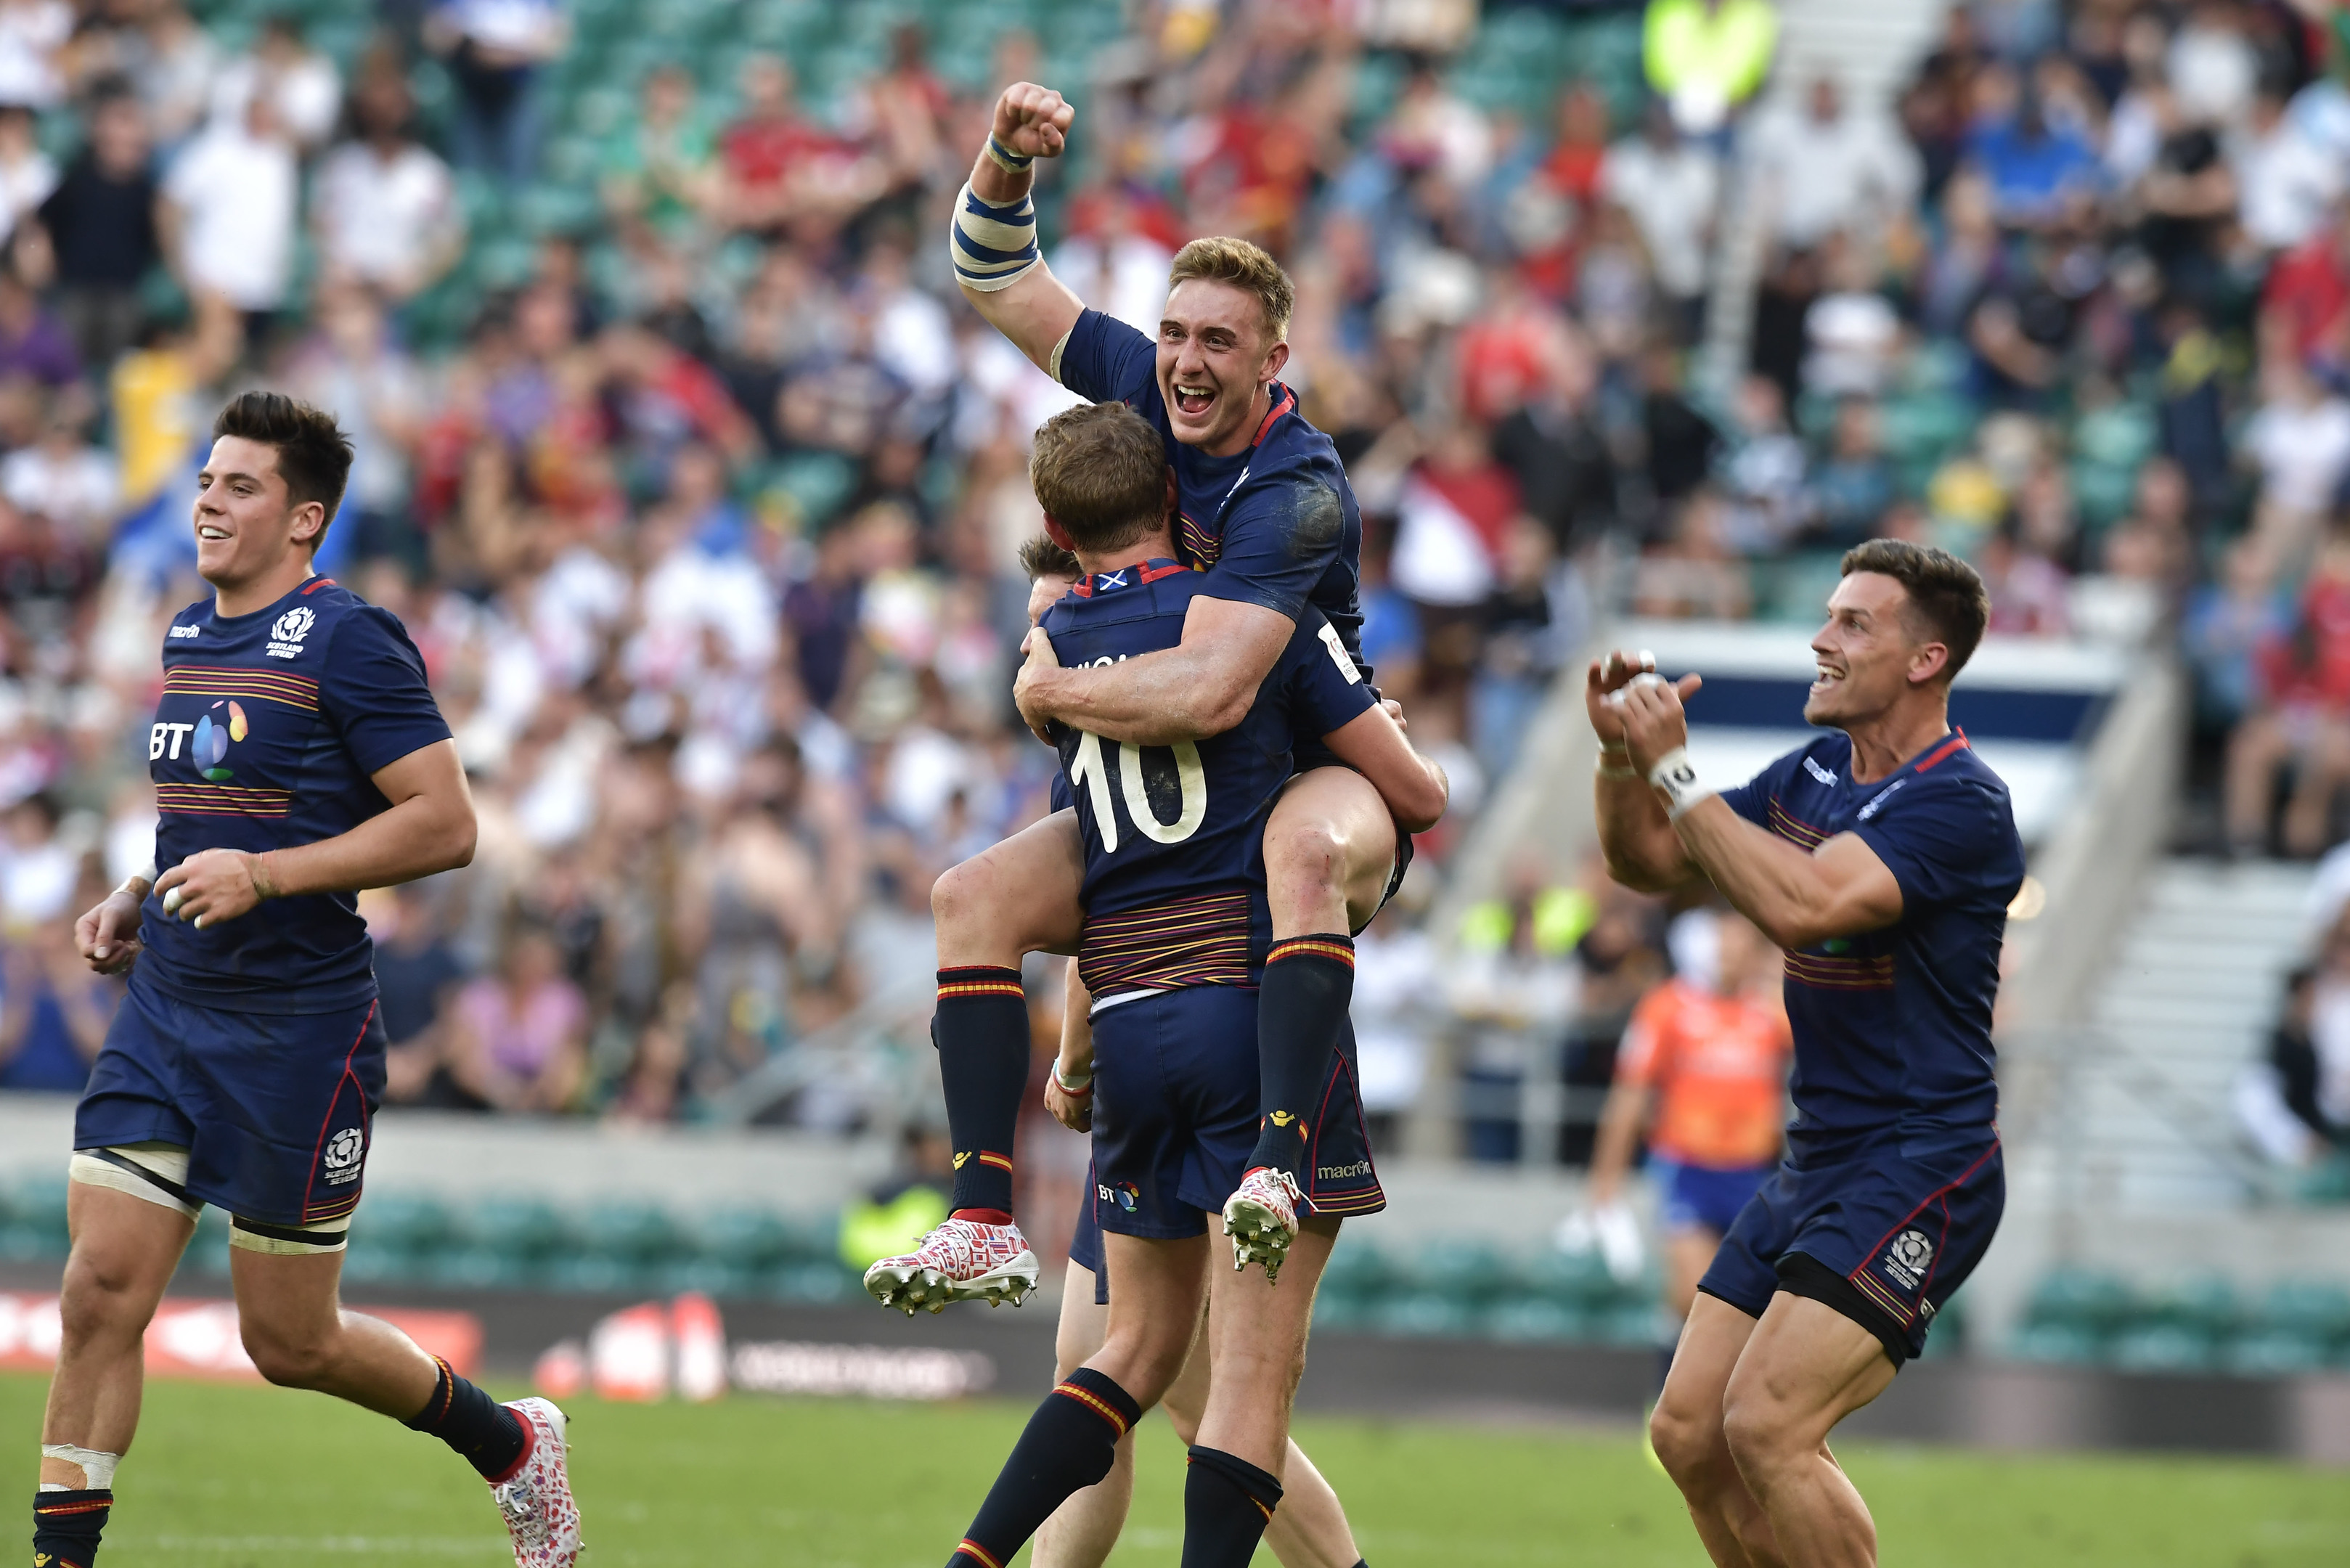 The retiring Scott Wight (10) and Dougie Fife celebrate as Scotland clinch victory in the HSBC London 7s